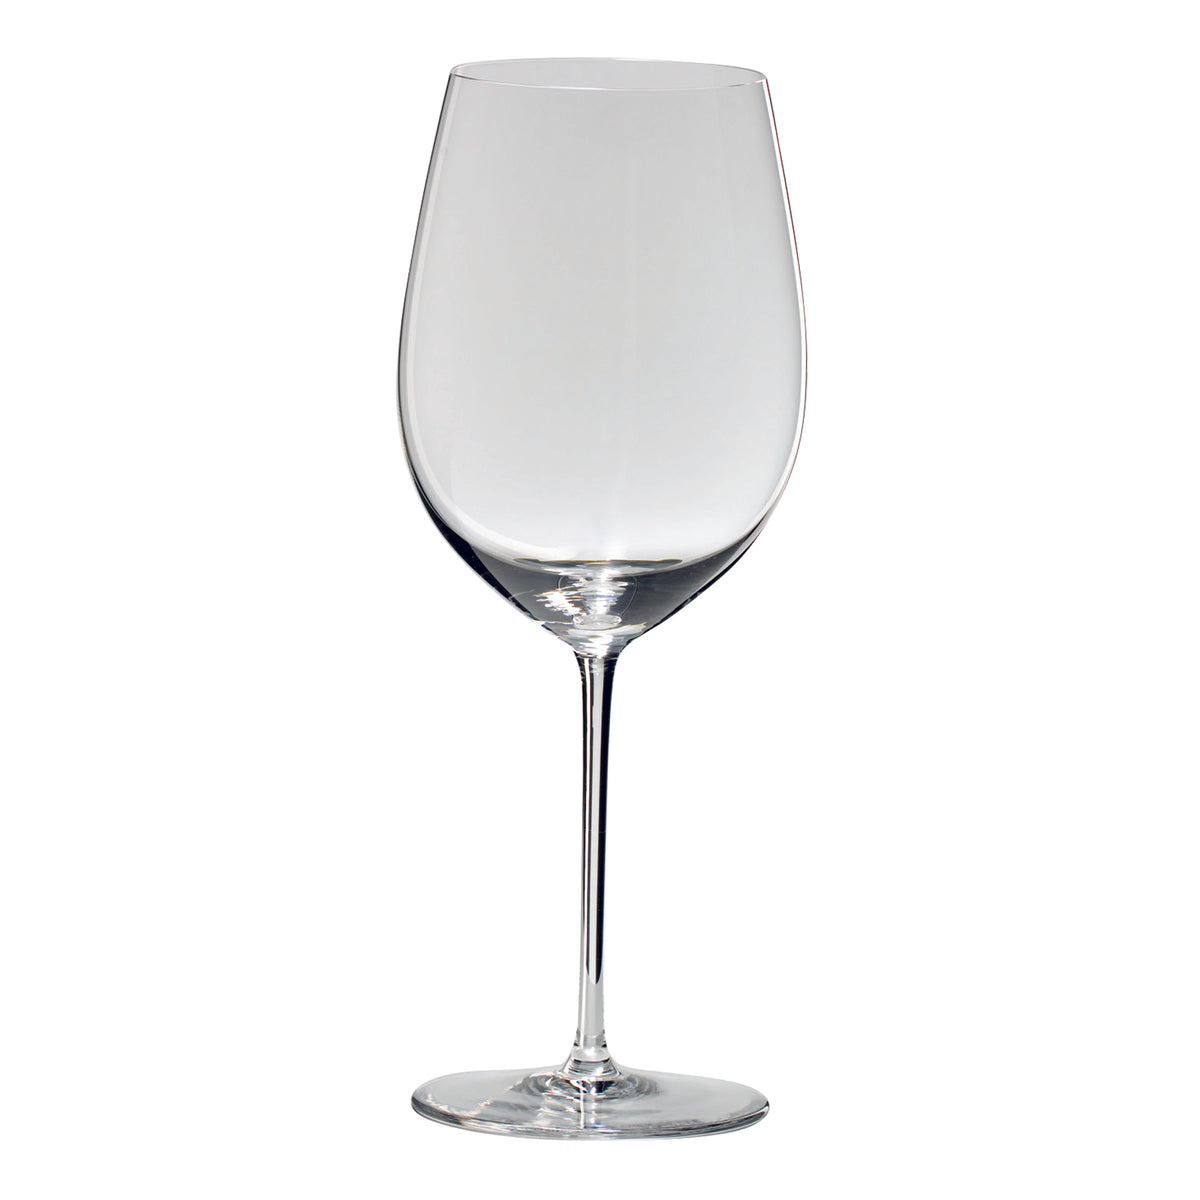 Sommelier Collection Bordeaux Grand Cru Wine Glass